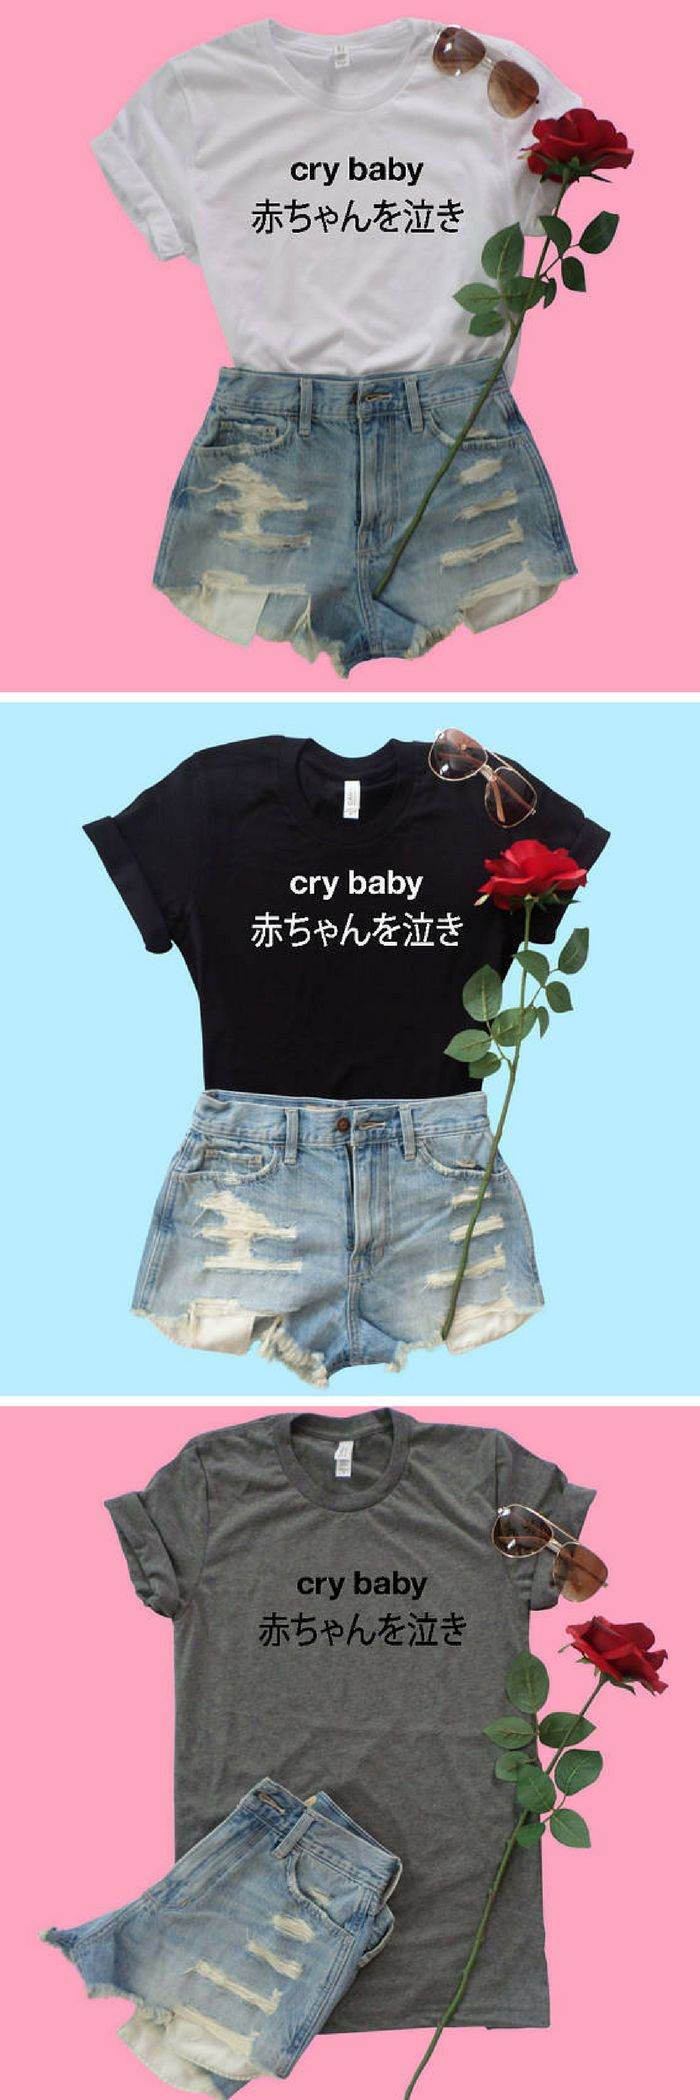 Kawaii cry baby top in Harajuku style with writing in Japanese. Very cool. Love this look as a baggy tee tucked into jean shorts. very tokyo style! #ad #harajuku #japanese #japanesefashion #kawaii